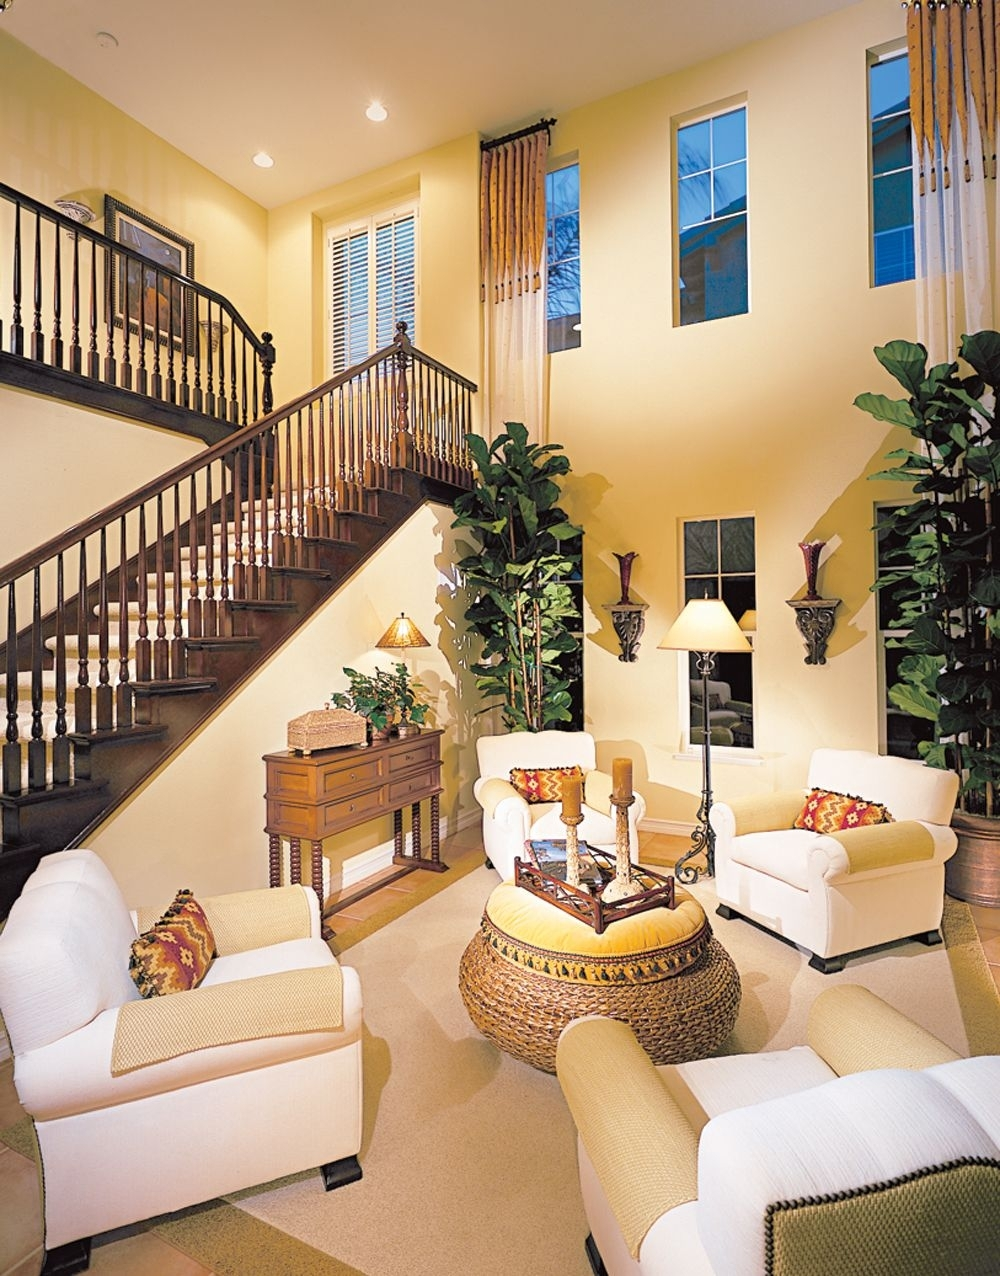 Not A Fan Of Stairs, But I Don't Think I'd Mind Them If The Rest In Recent High Ceiling Wall Accents (View 12 of 15)